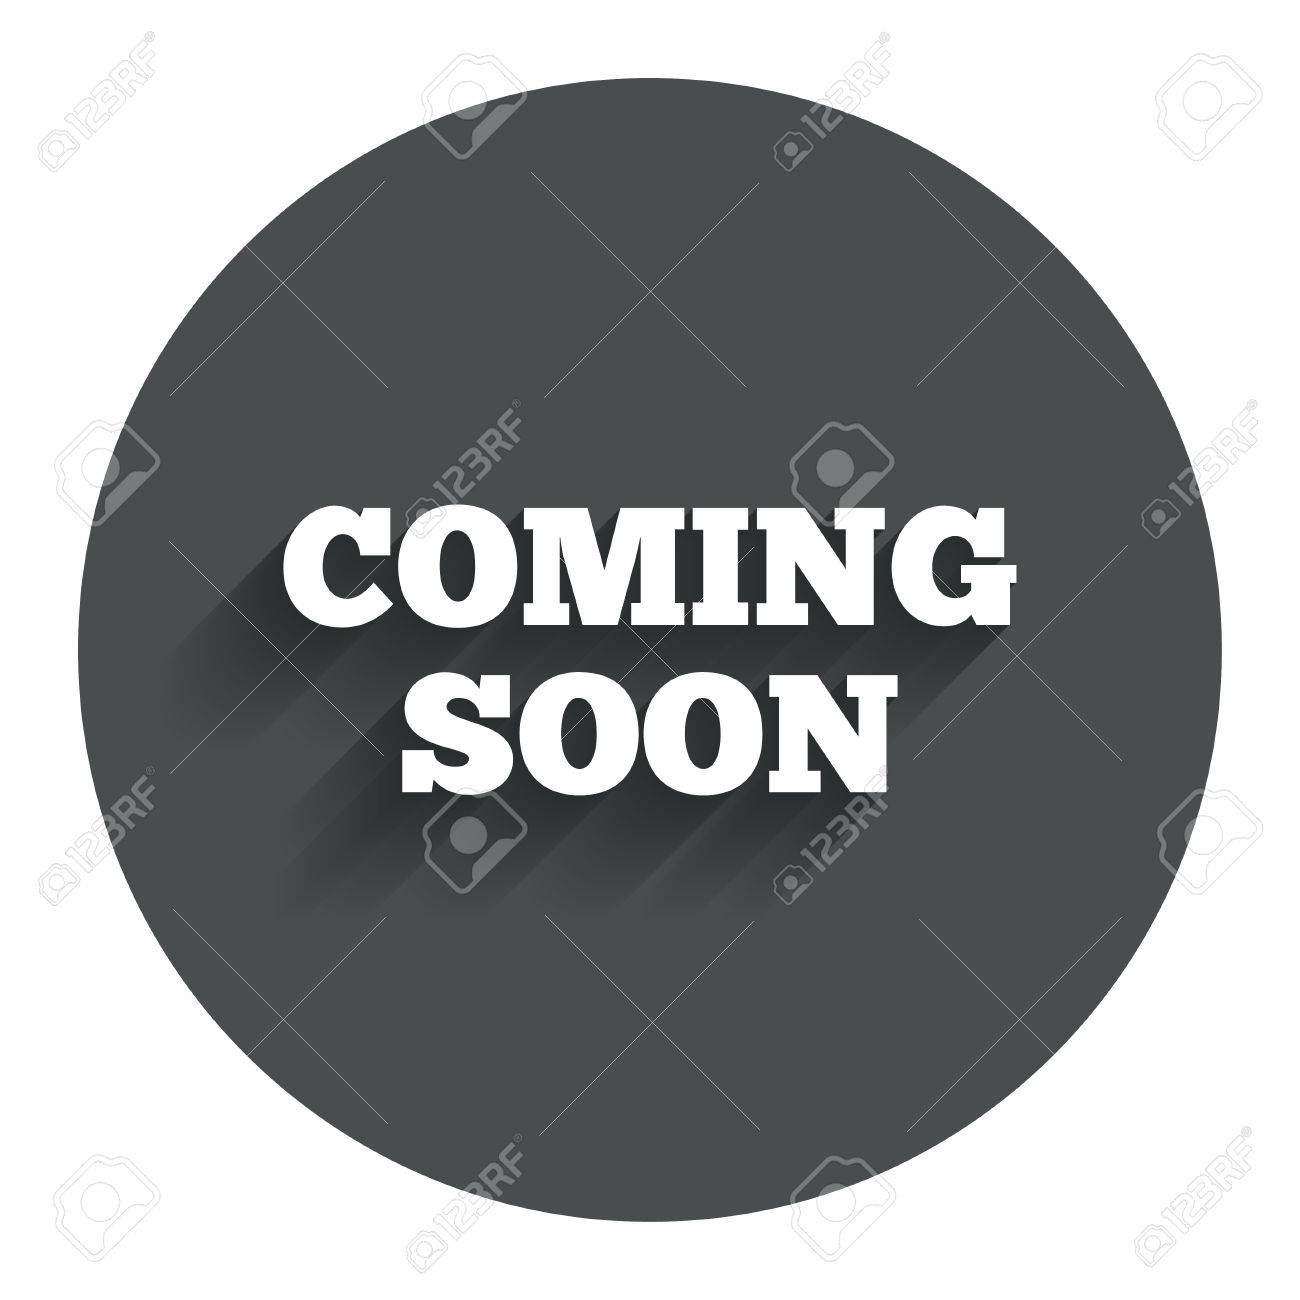 coming soon sign icon promotion announcement symbol circle